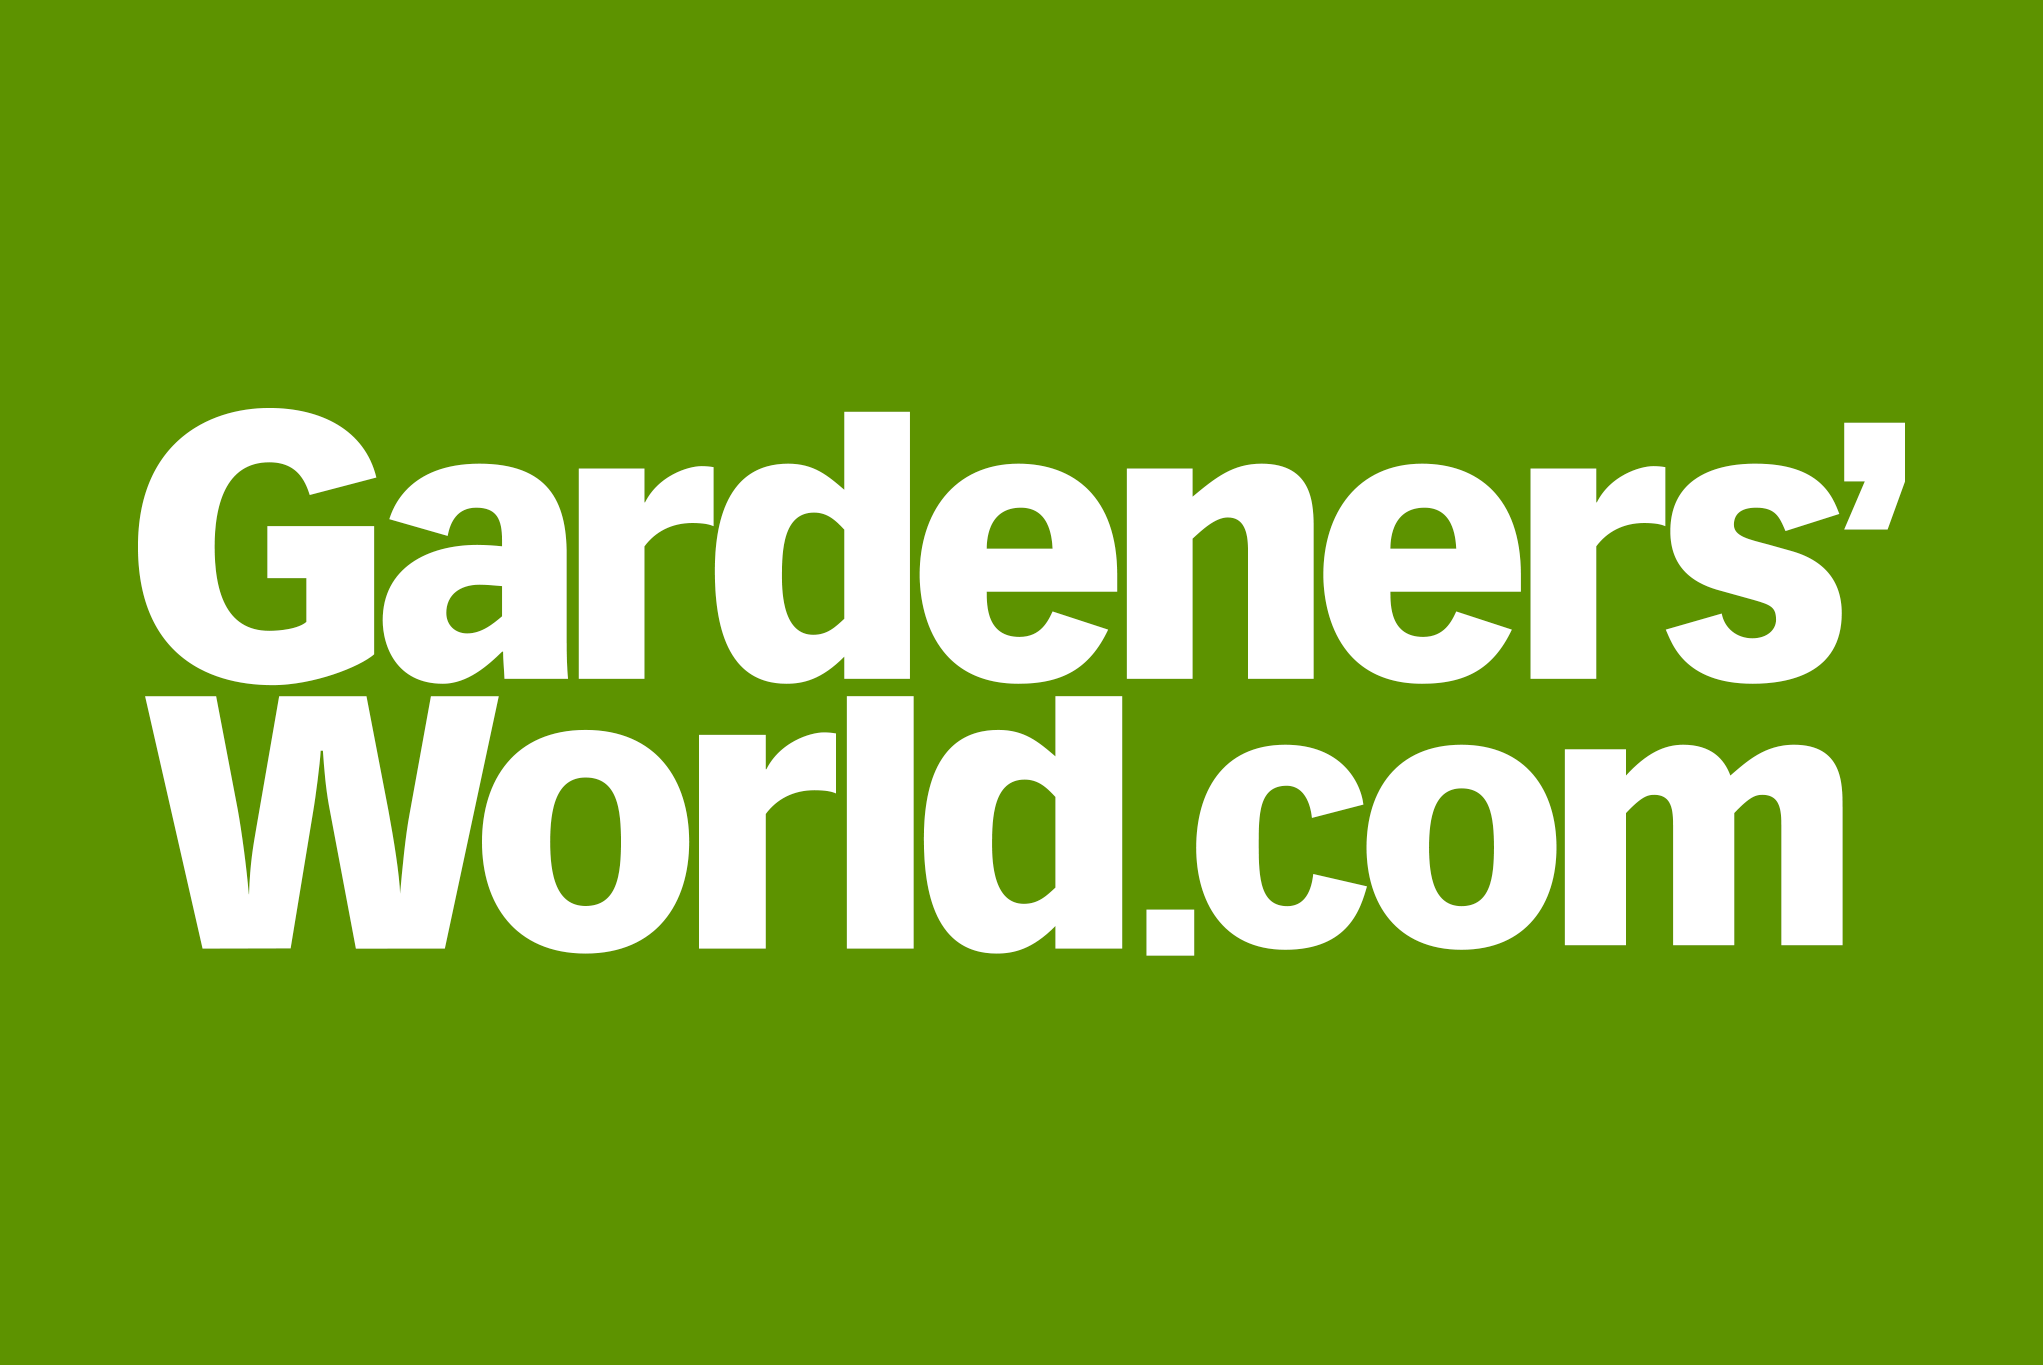 gardenersworld.com website logo